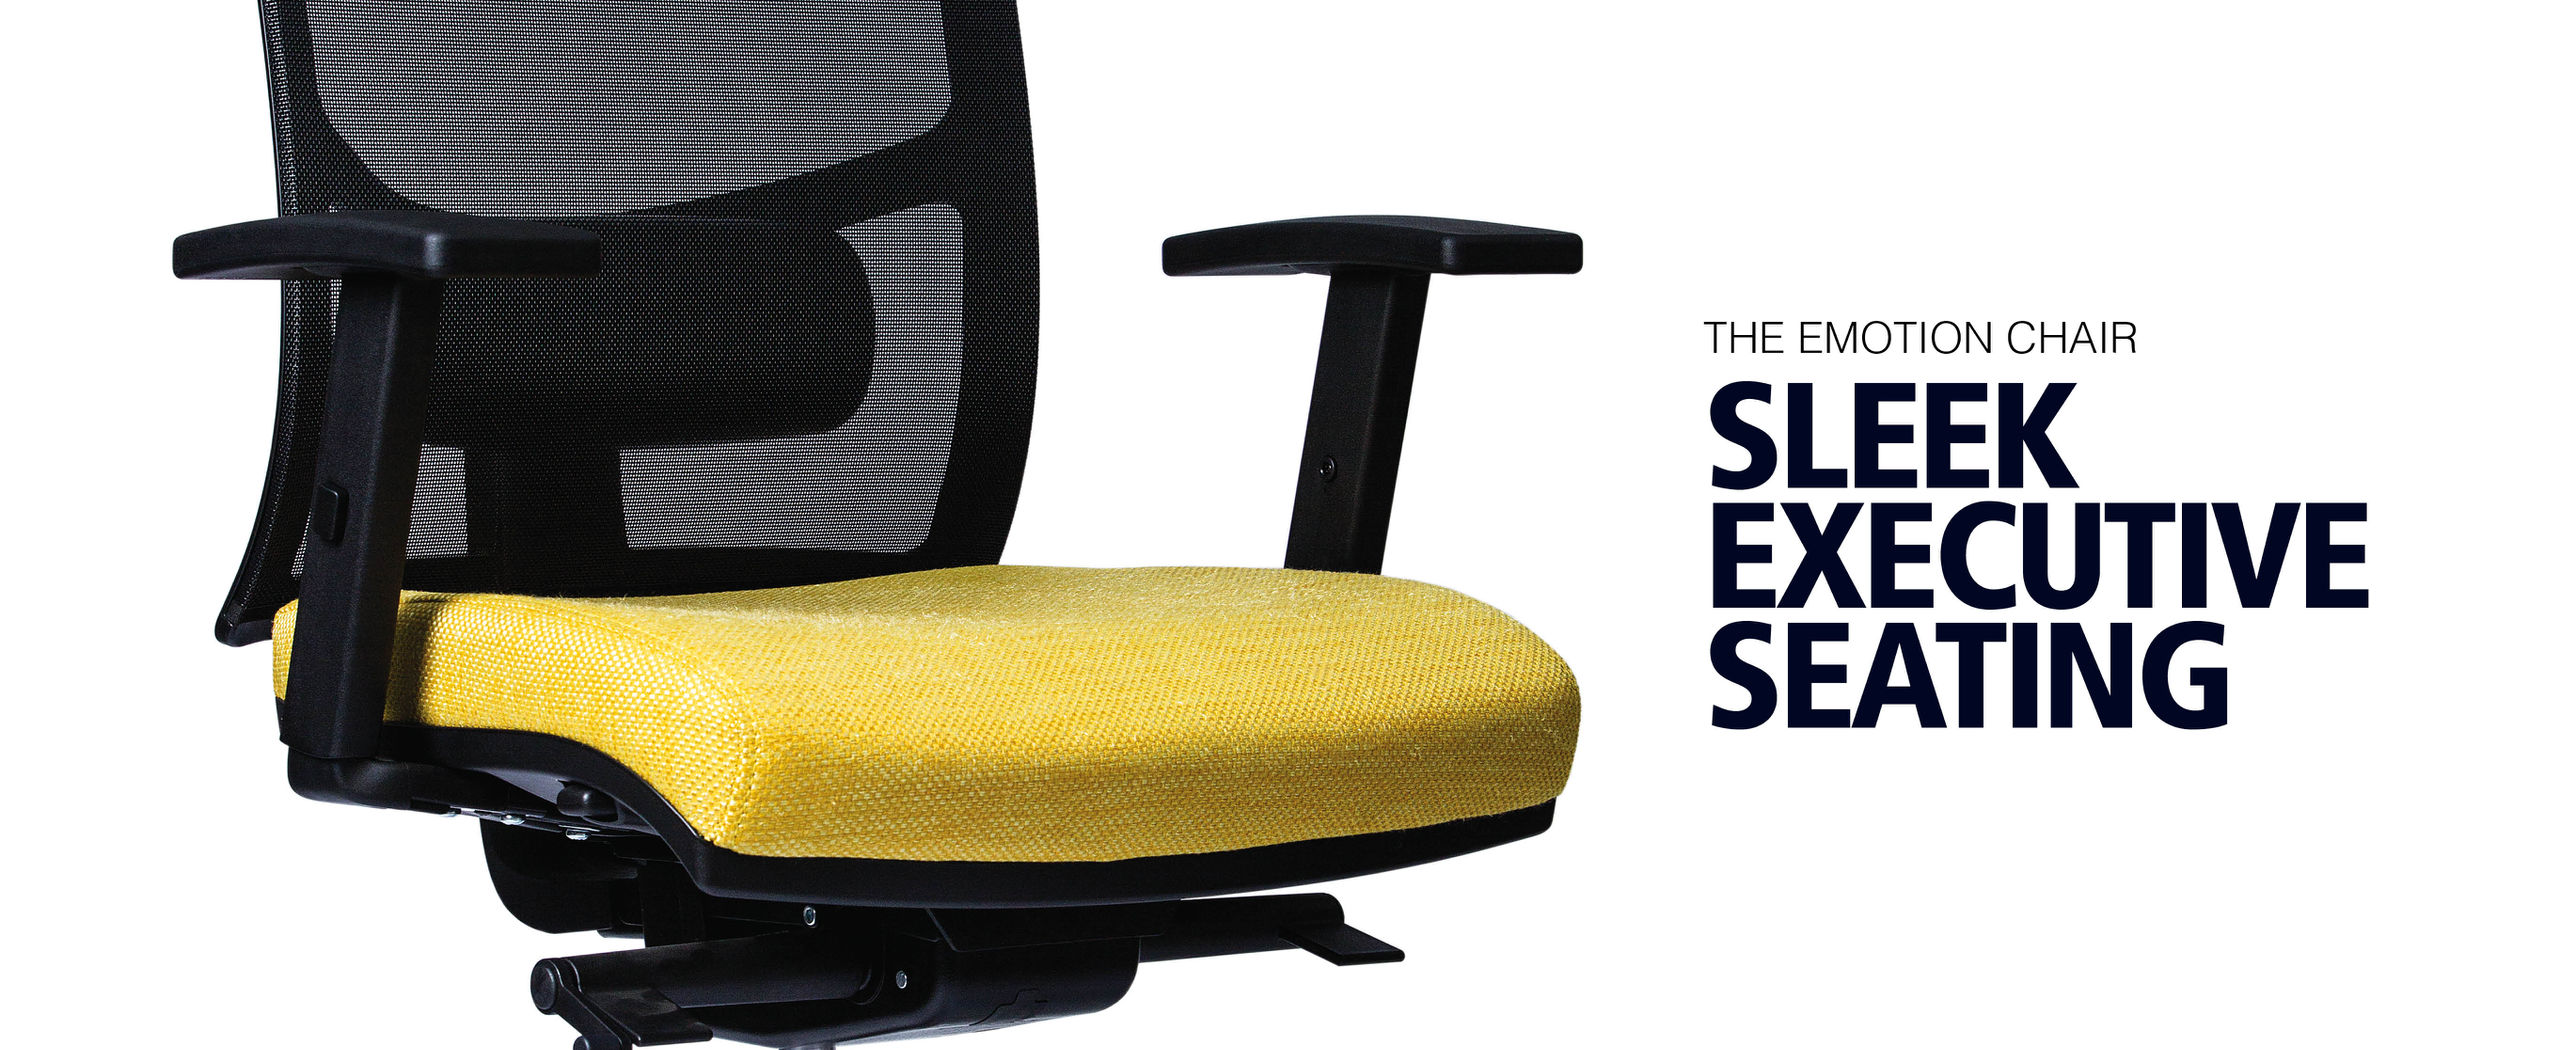 The Emotion Chair